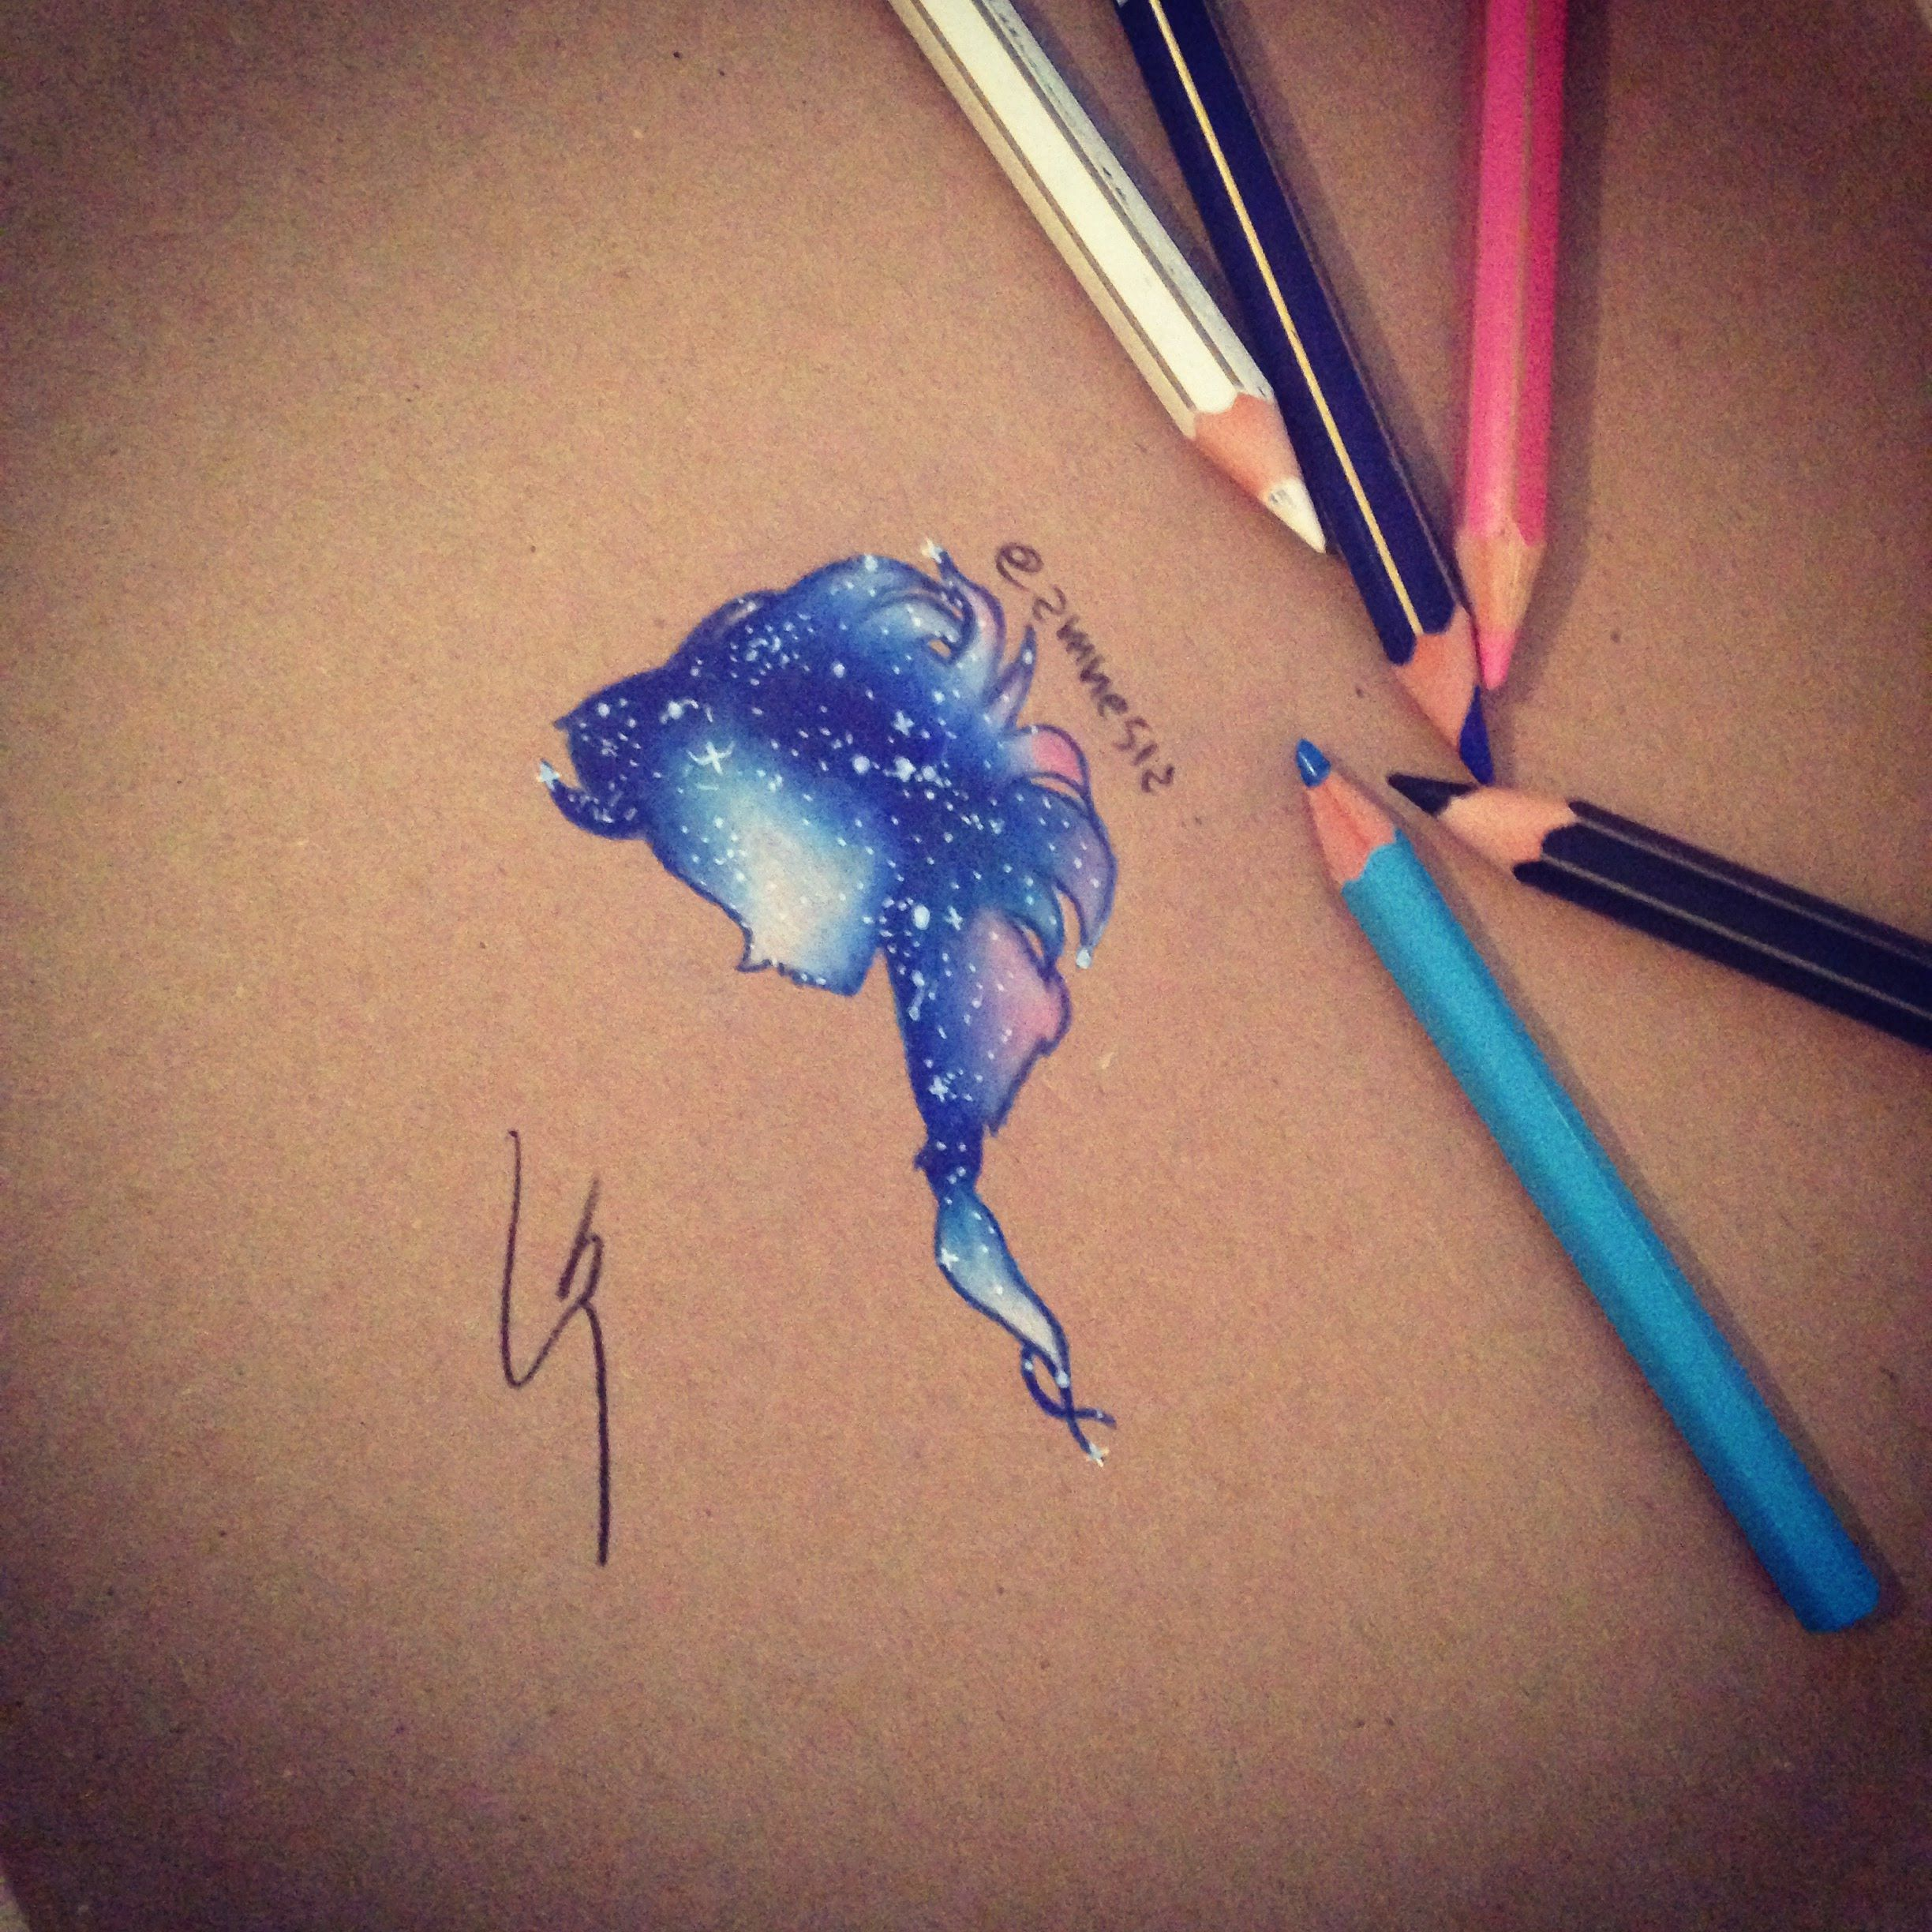 How to draw galaxy elsa with colored pencil by sgalia giuseppe